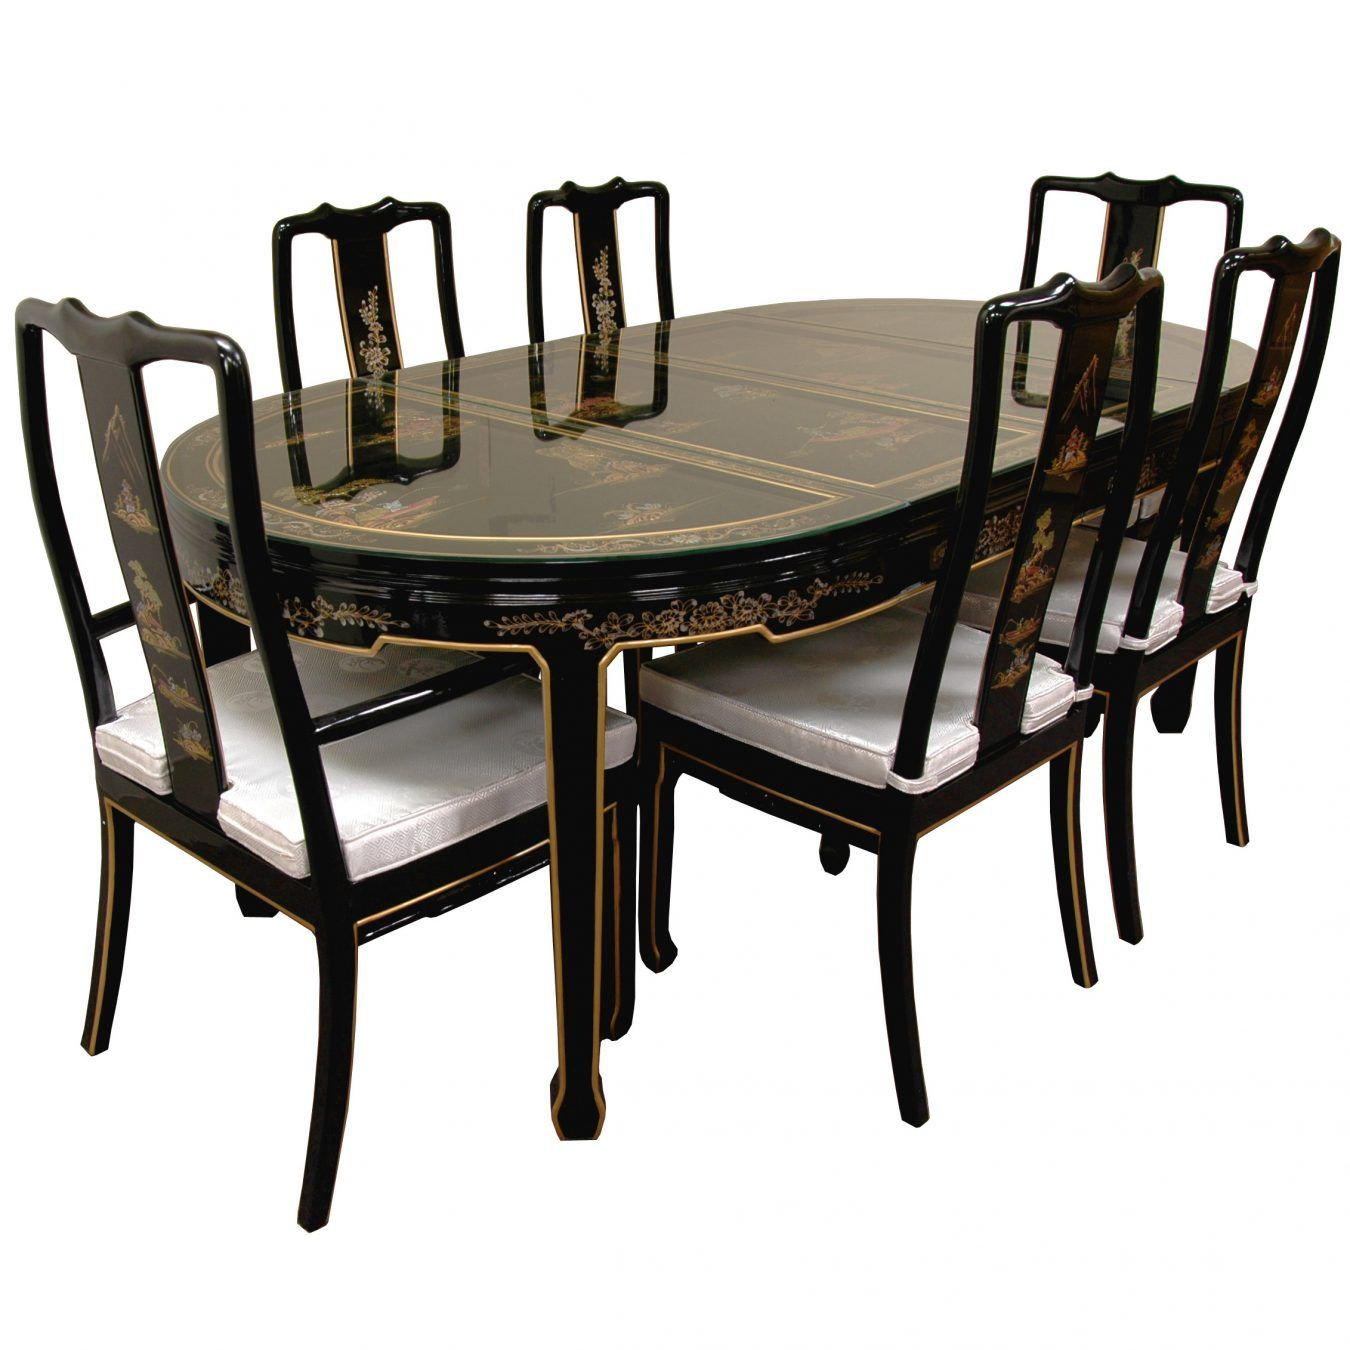 Hand Painted on Black Lacquer Dining Table W/ 6 Chairs | Chinese ...